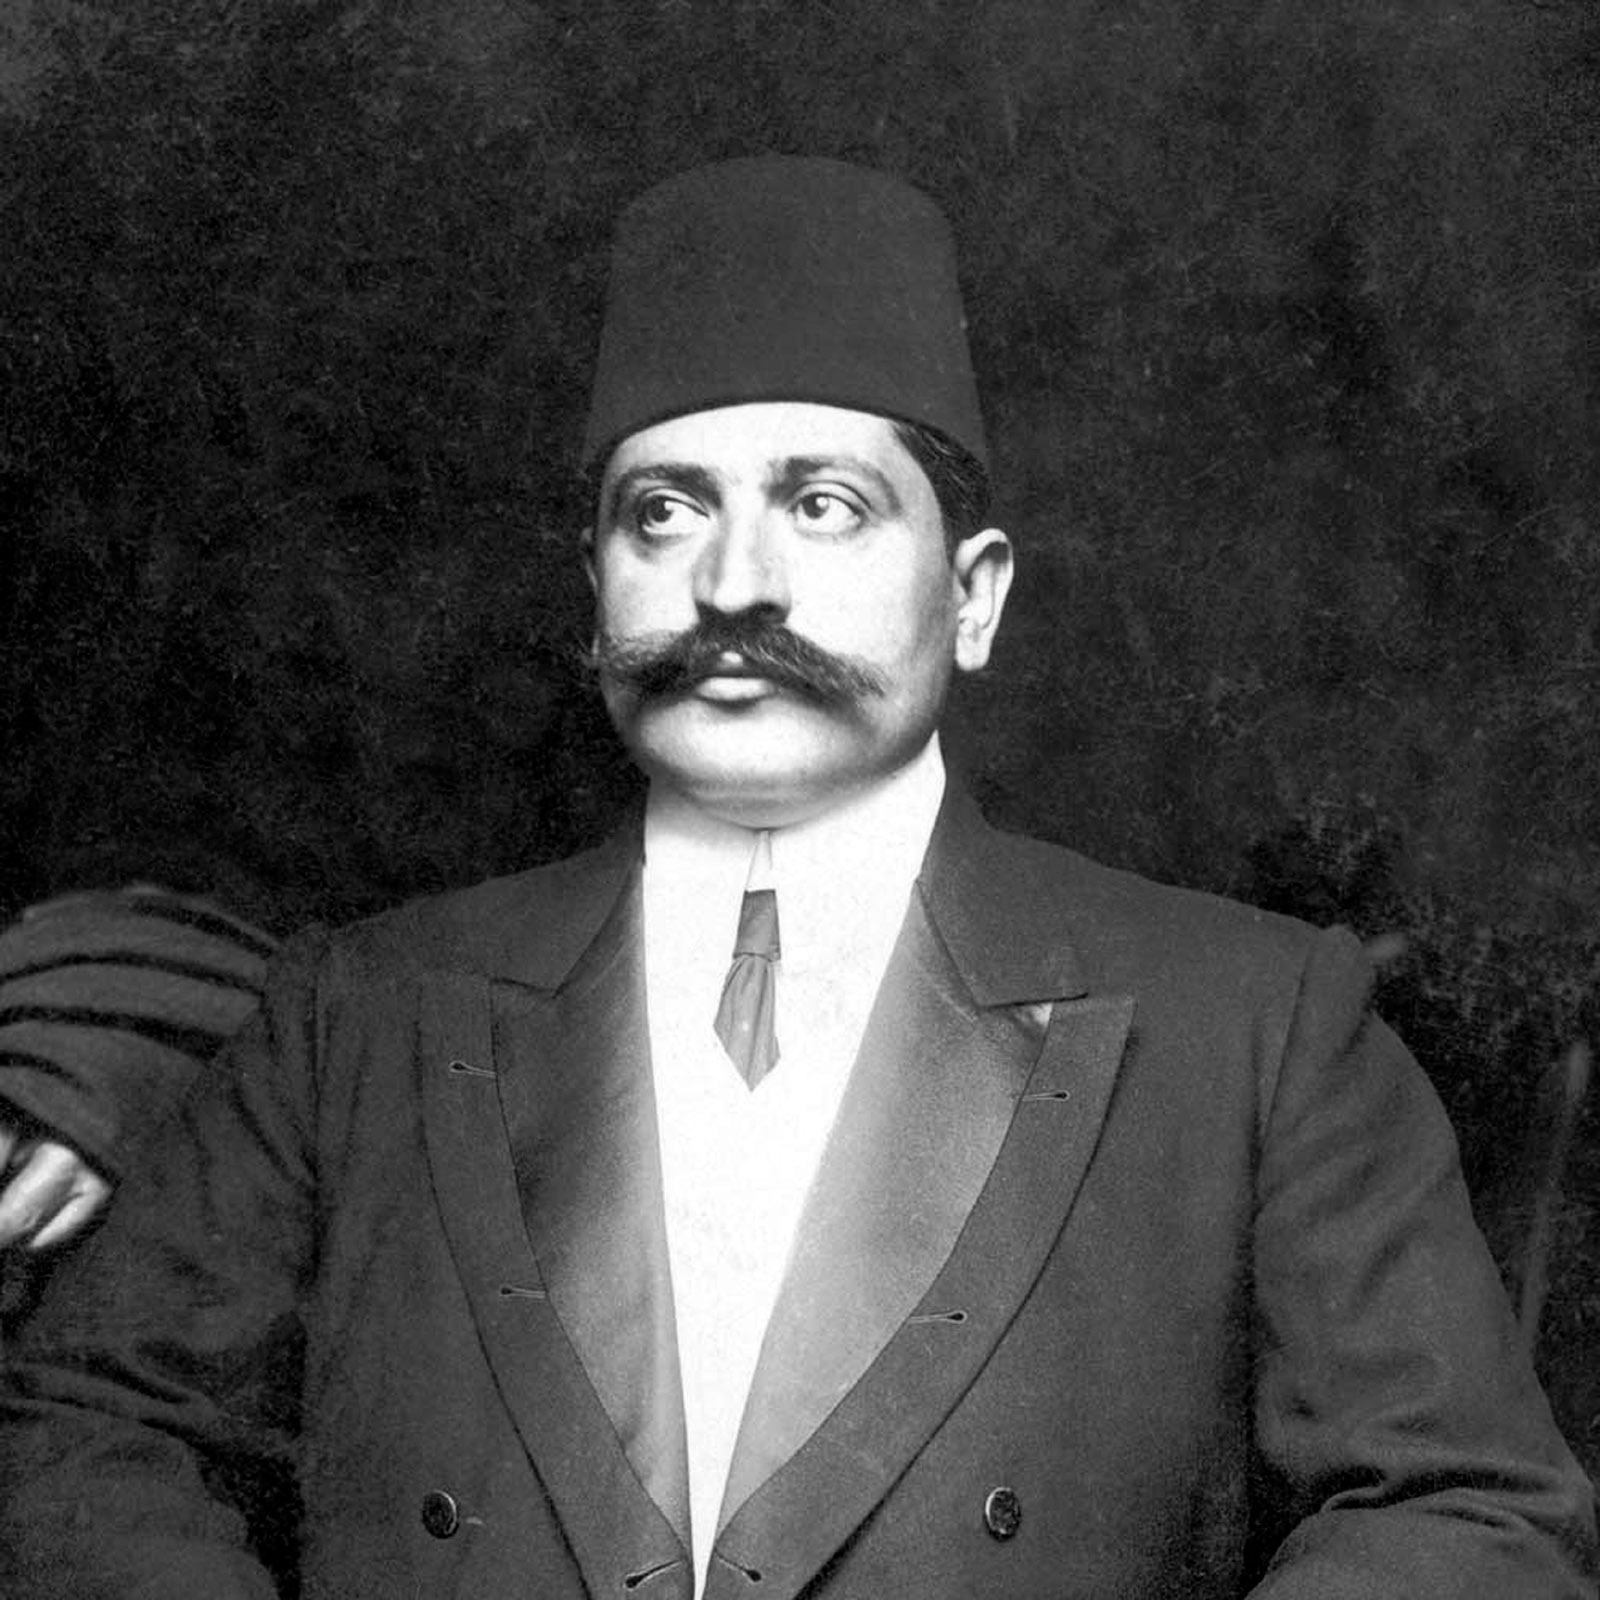 Talaat Pasha, the Ottoman minister of the interior during the Armenian genocide